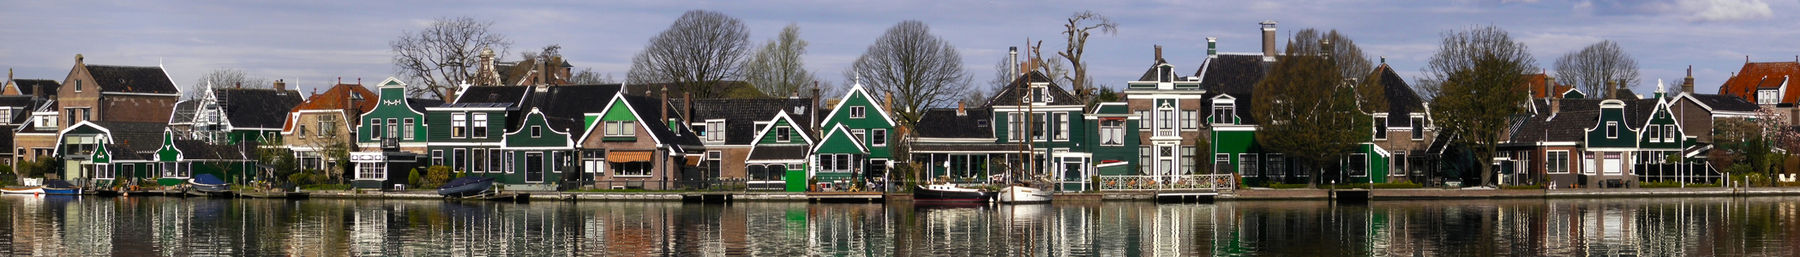 Houses along the waterfront in Zaandijk